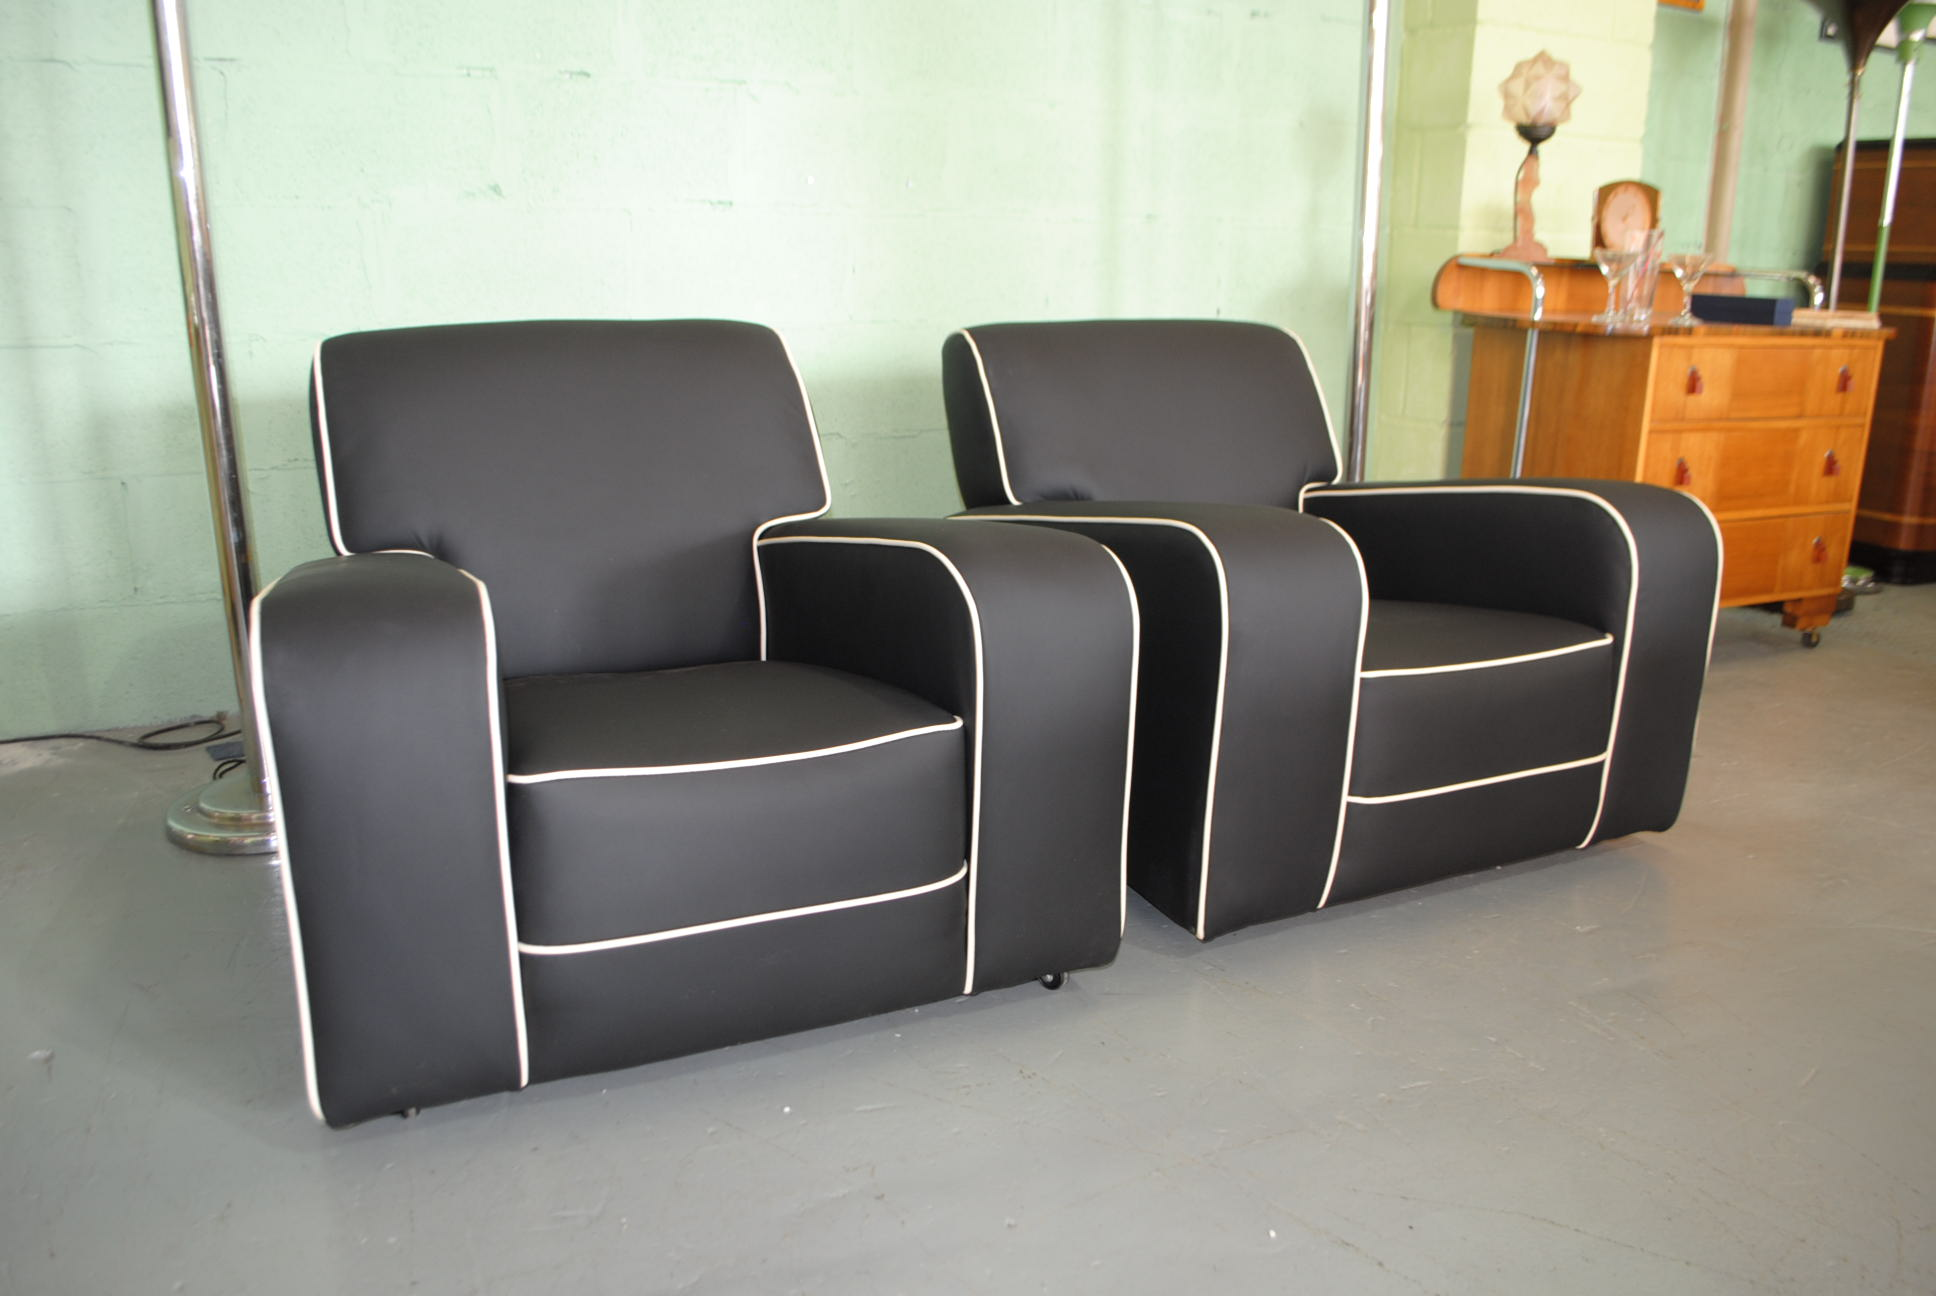 art deco armchairs cloud 9 art deco furniture sales. Black Bedroom Furniture Sets. Home Design Ideas